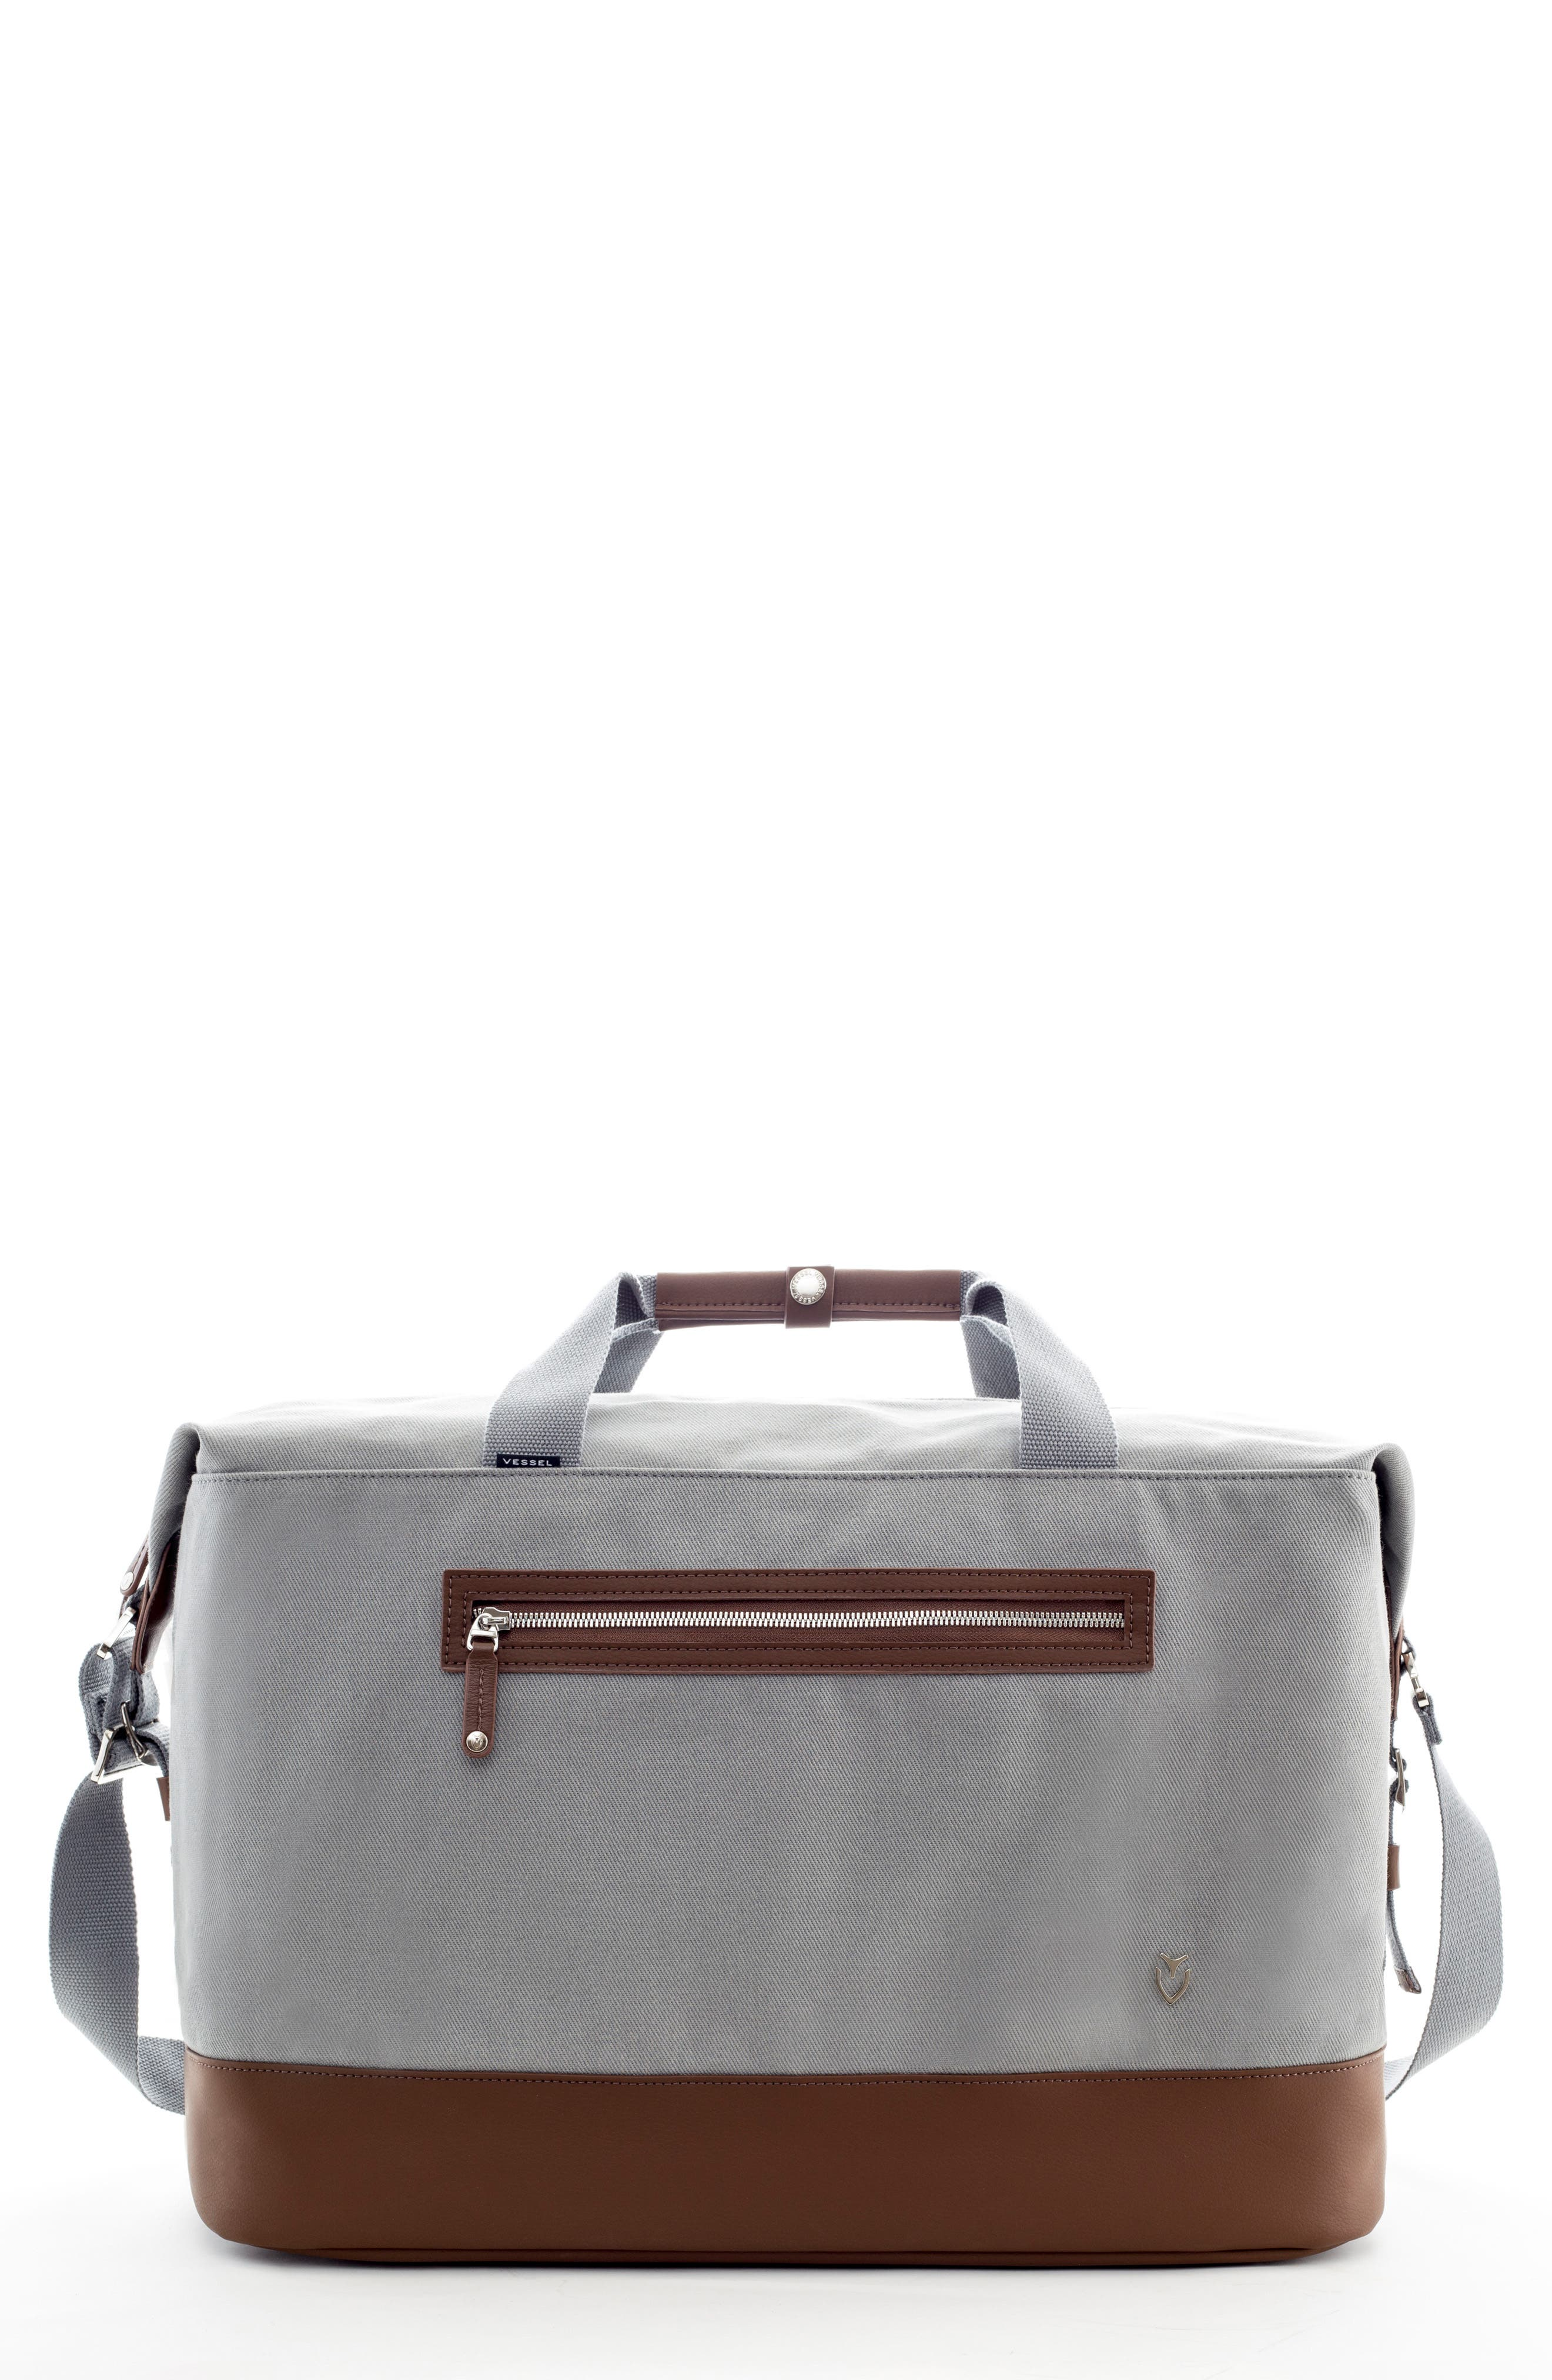 Vessel Refined Duffel Bag